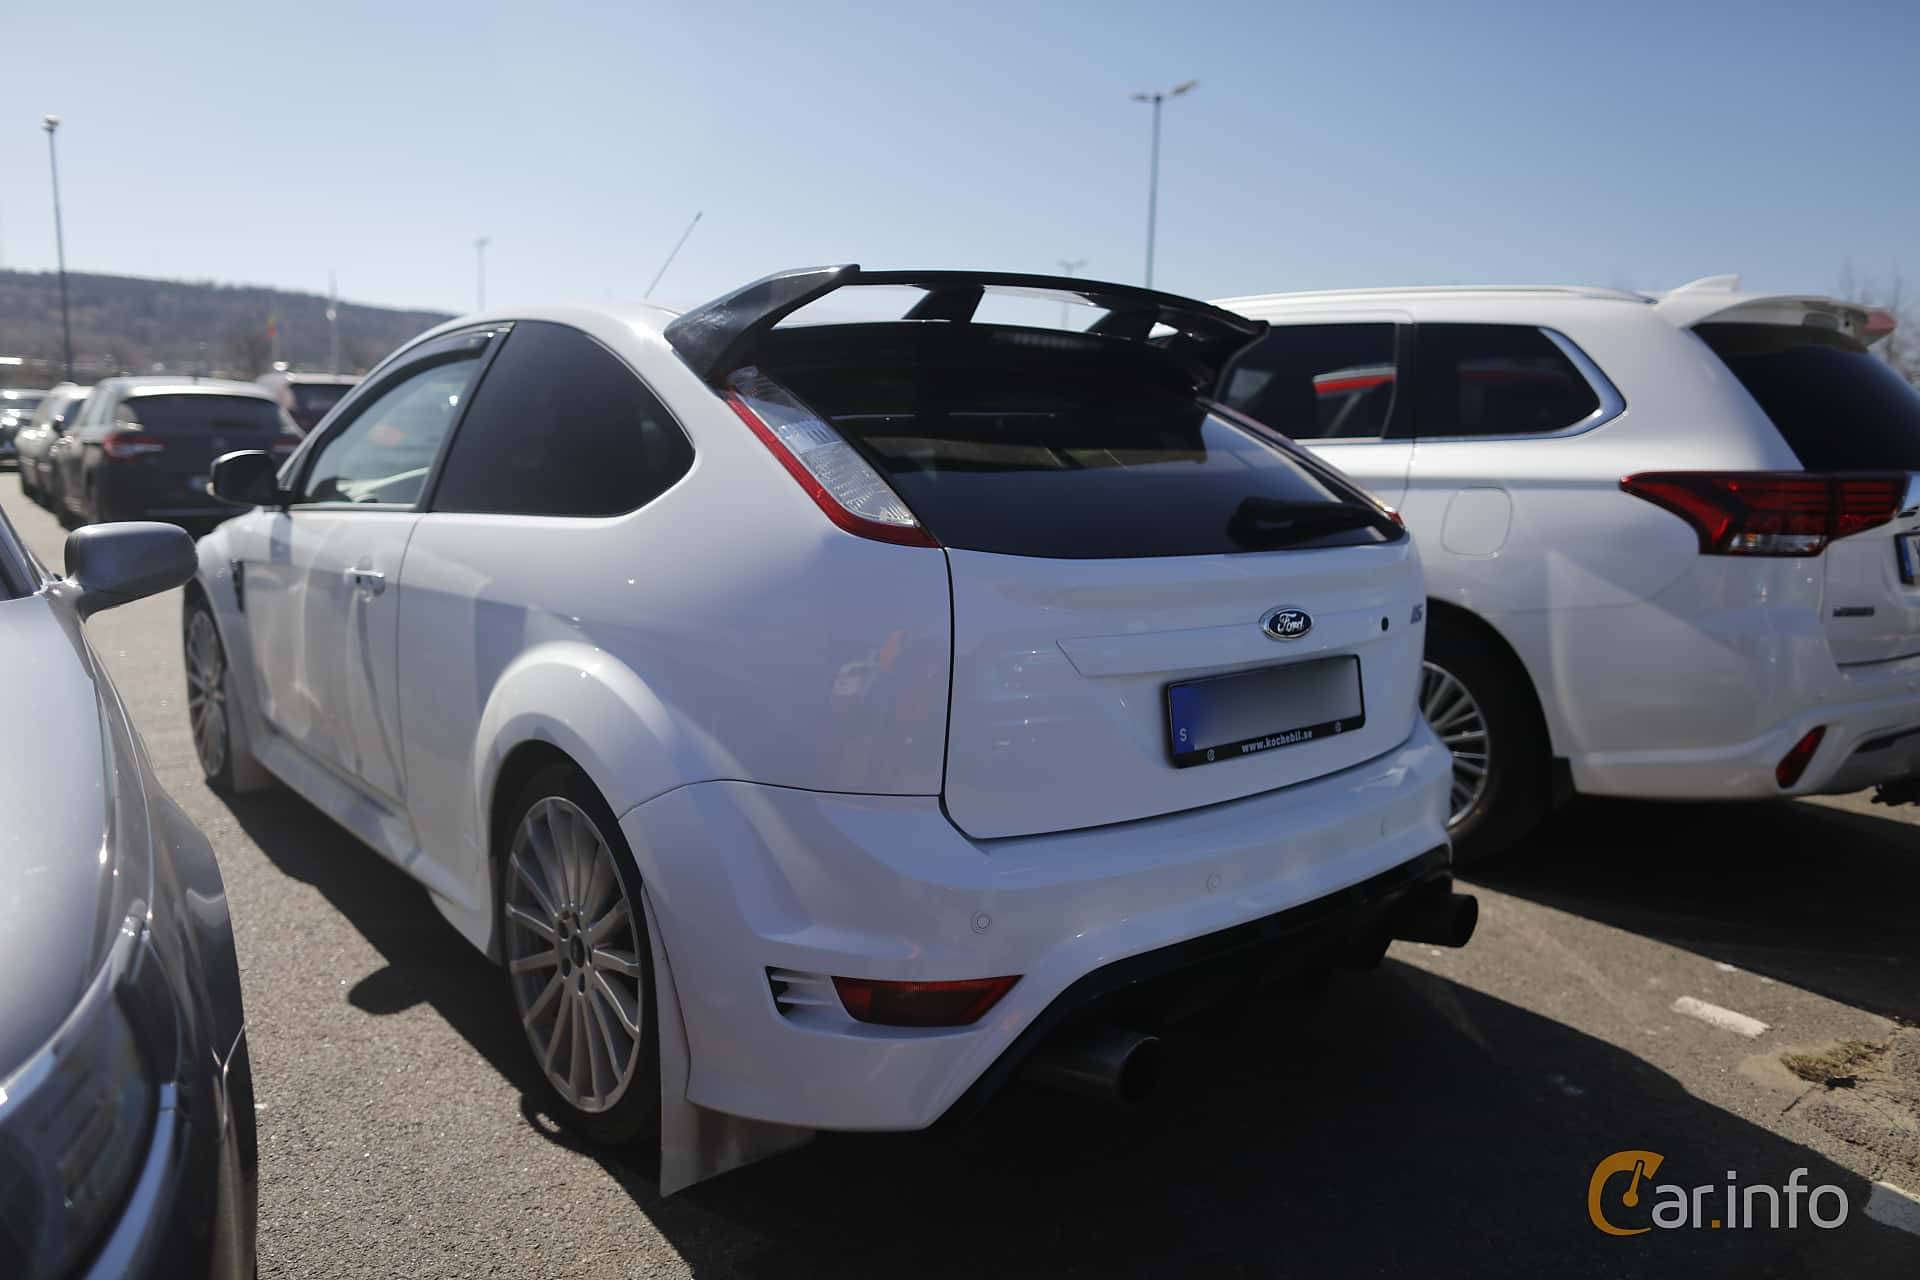 Ford Focus RS 2.5 Manual, 305hp, 2010